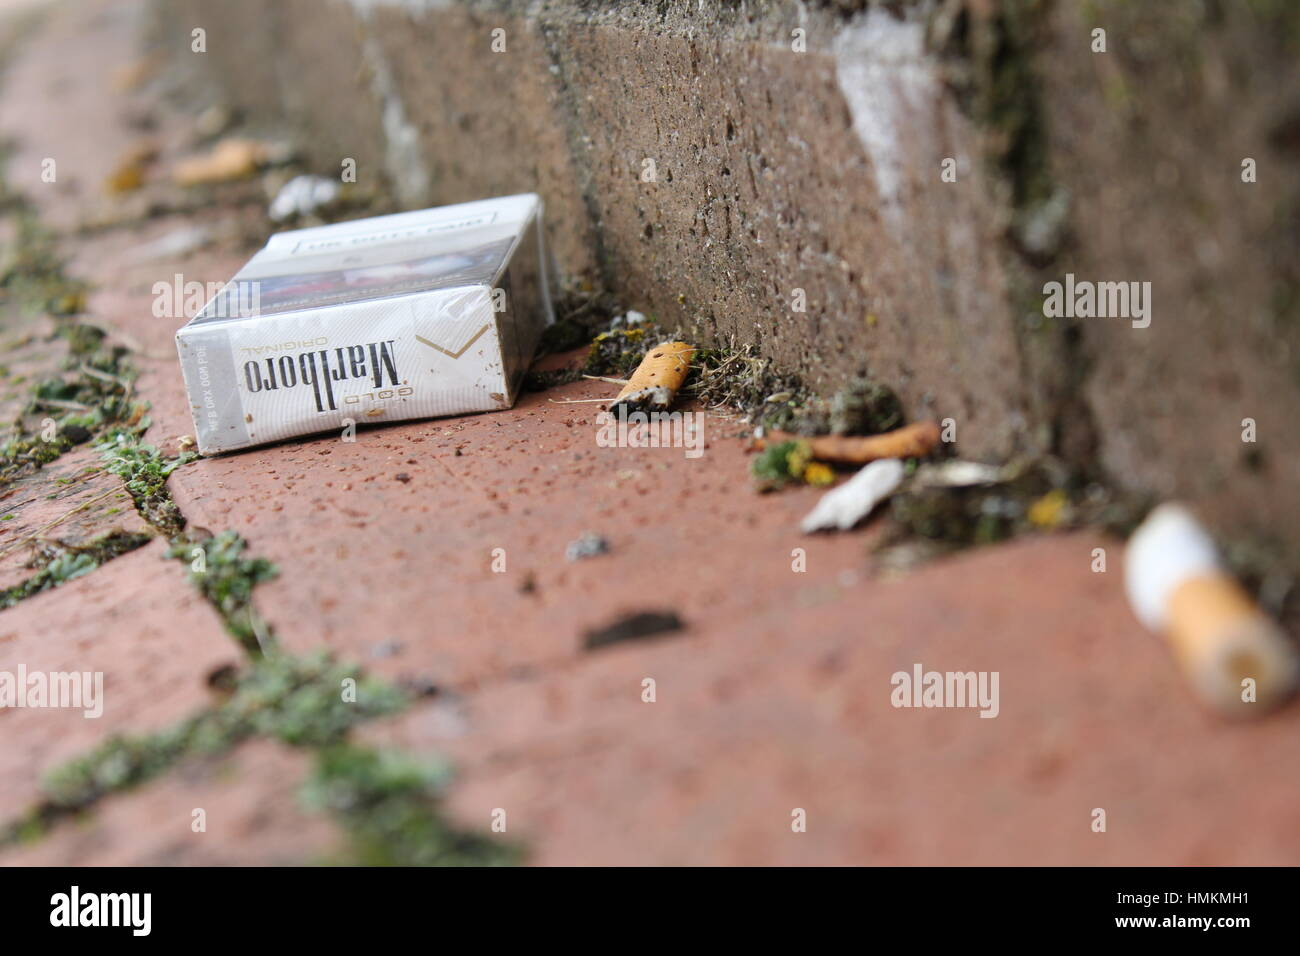 Buy cigarettes Viceroy filters London